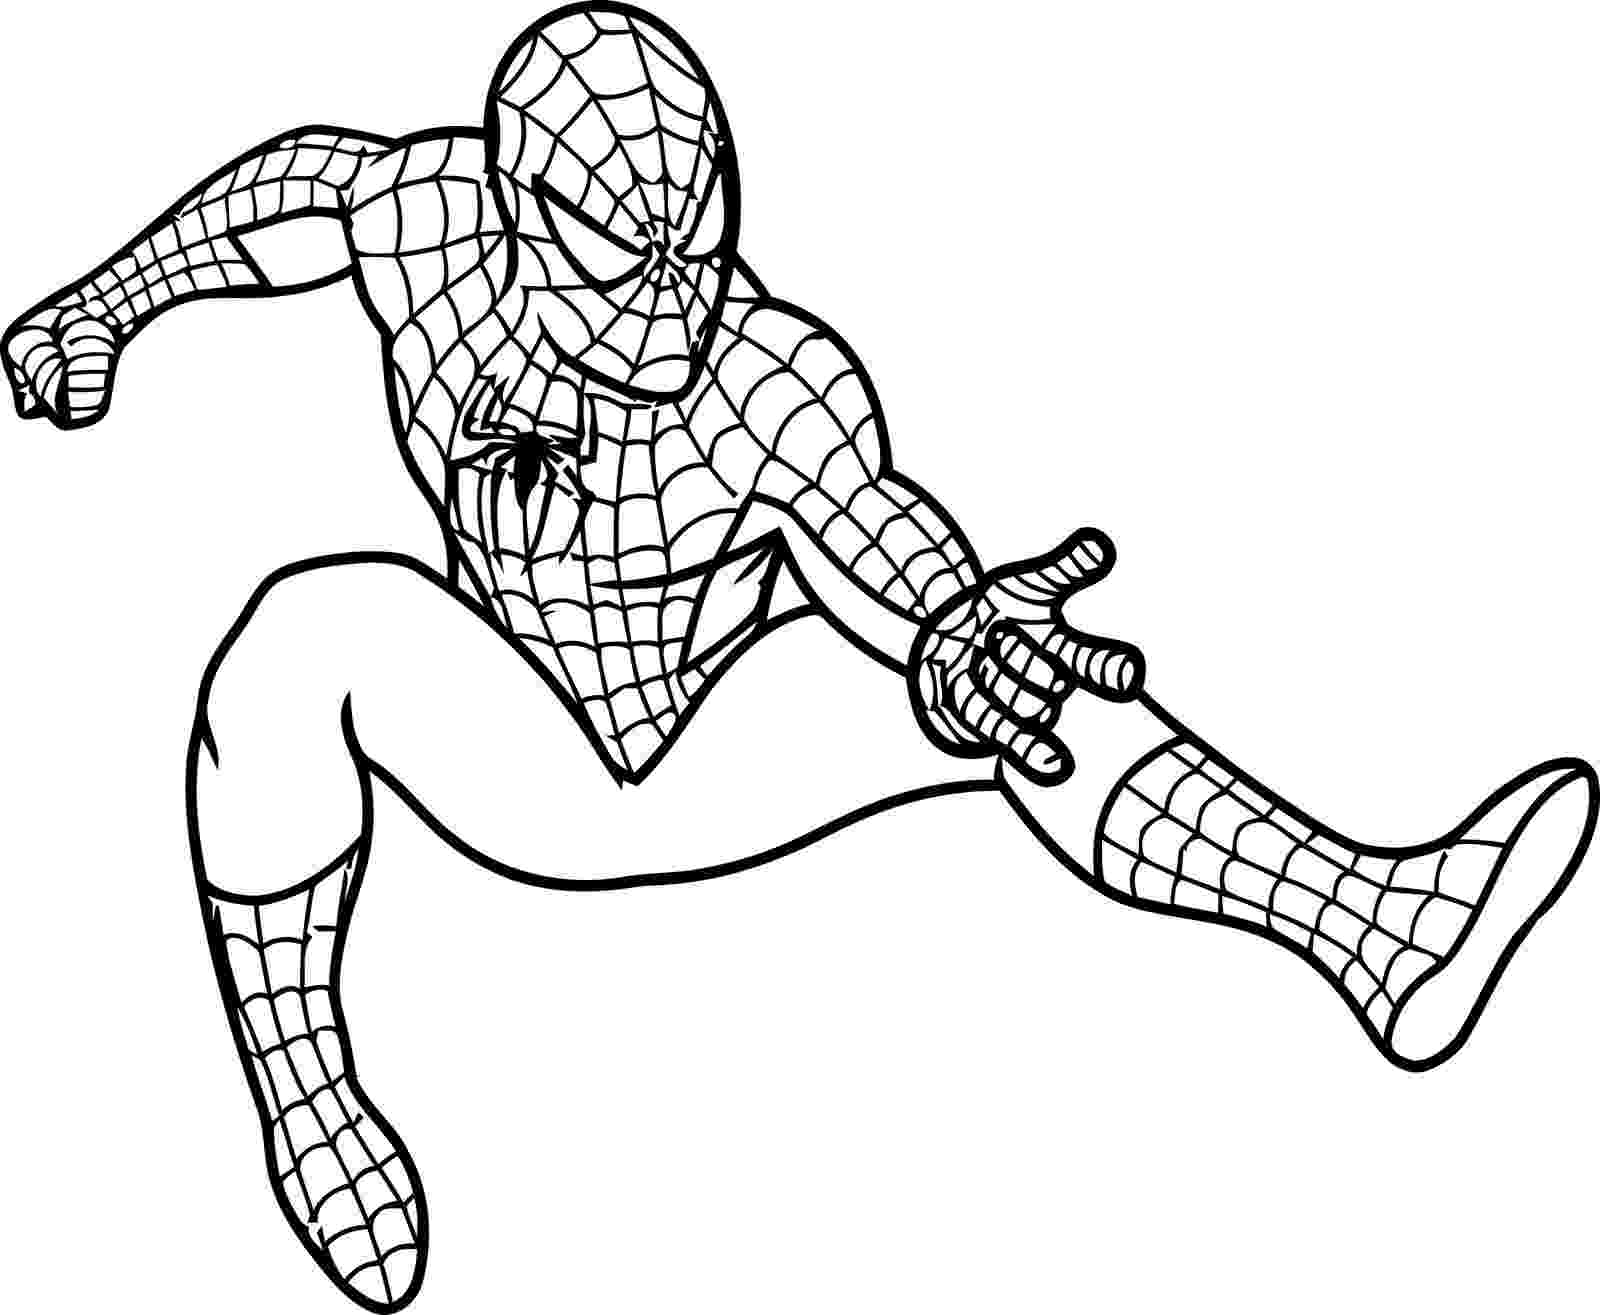 spiderman coloring books spiderman coloring pages team colors spiderman books coloring